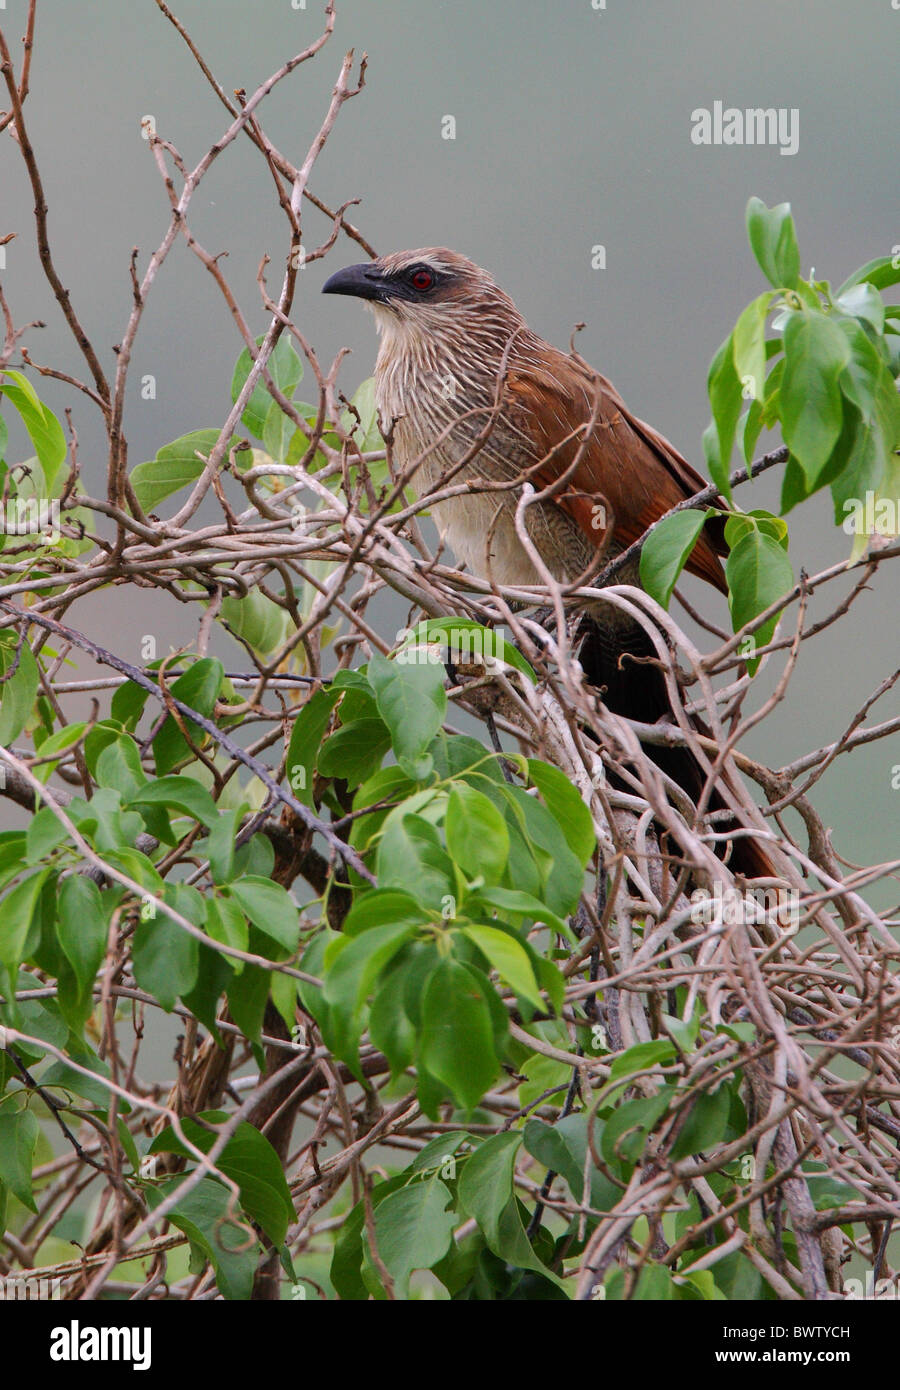 White-browed Coucal (Centropus superciliosus) adult, perched in bush, Mwaluganje Elephant Reserve, Kenya, november - Stock Image